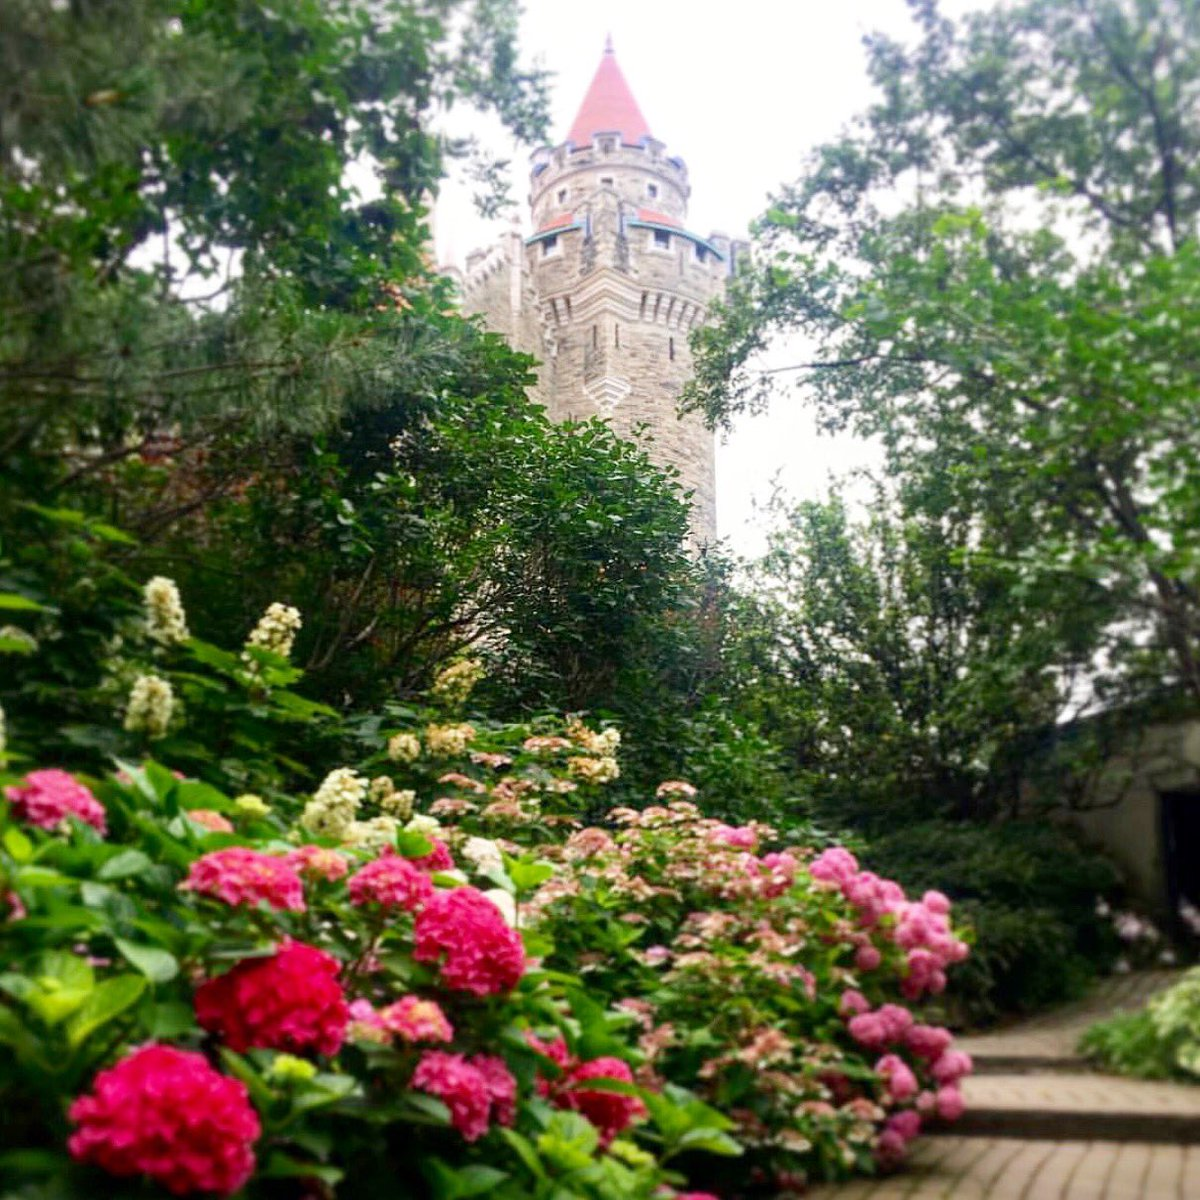 Casa Loma On Twitter Mondays Arent So Bad With This View This